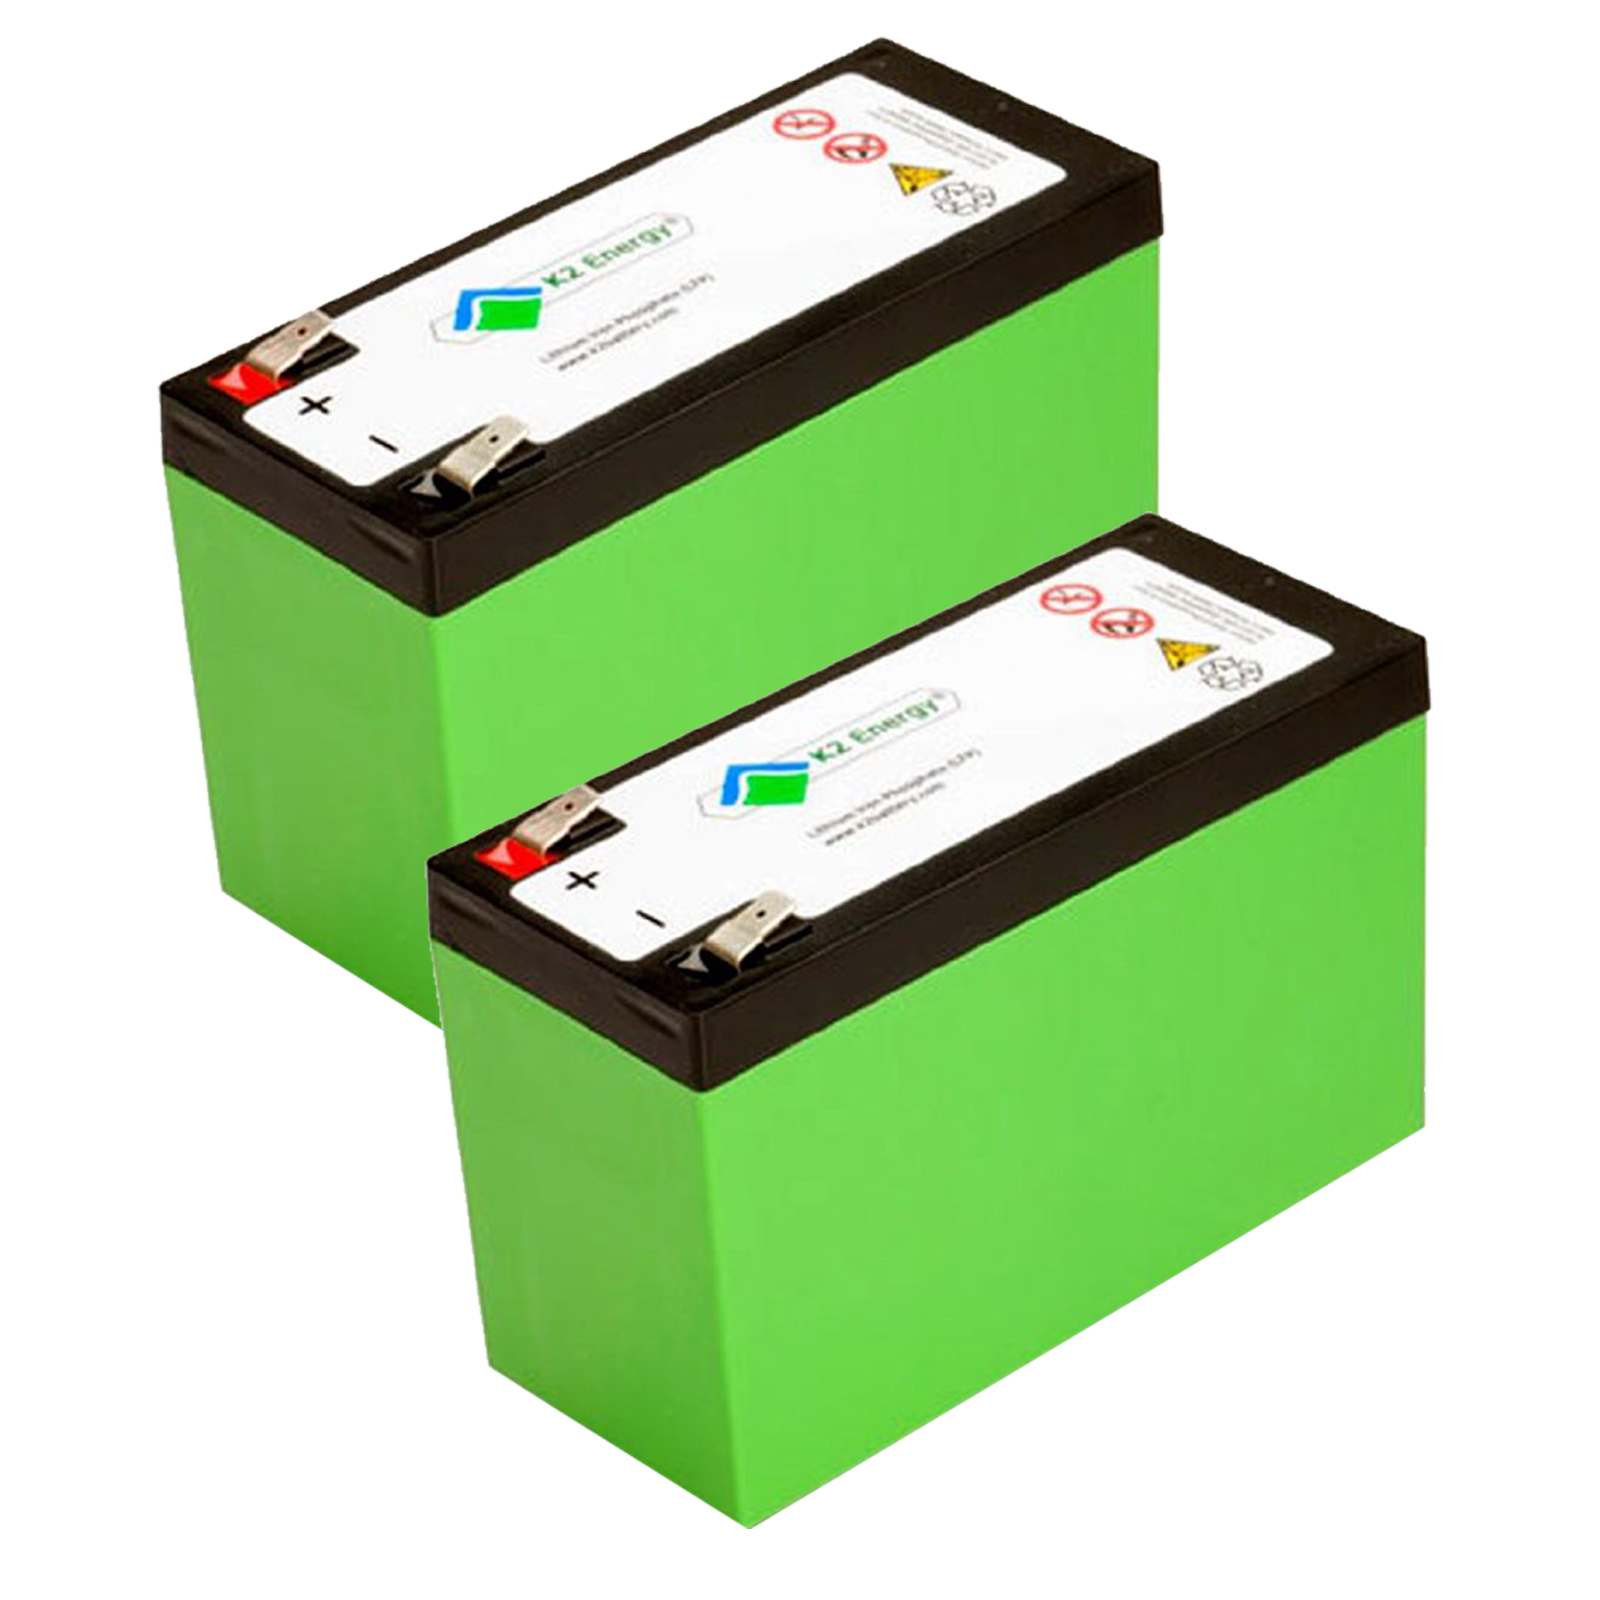 2pc k2 energy 12v 7ah lifepo4 battery for golf carts backup systems solar ebay. Black Bedroom Furniture Sets. Home Design Ideas